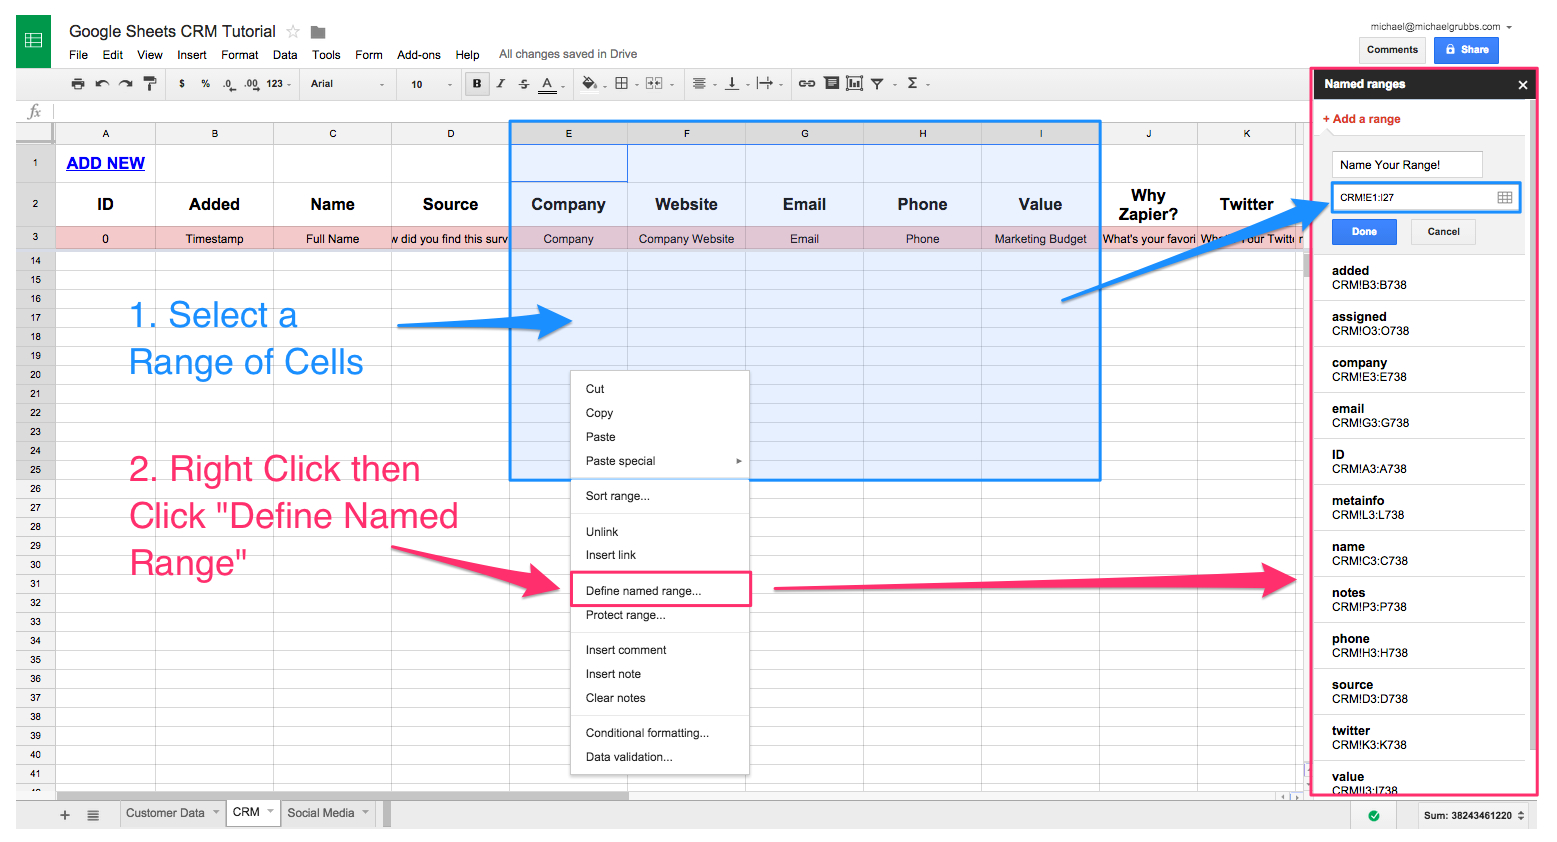 Moves Management Spreadsheet With Spreadsheet Crm: How To Create A Customizable Crm With Google Sheets